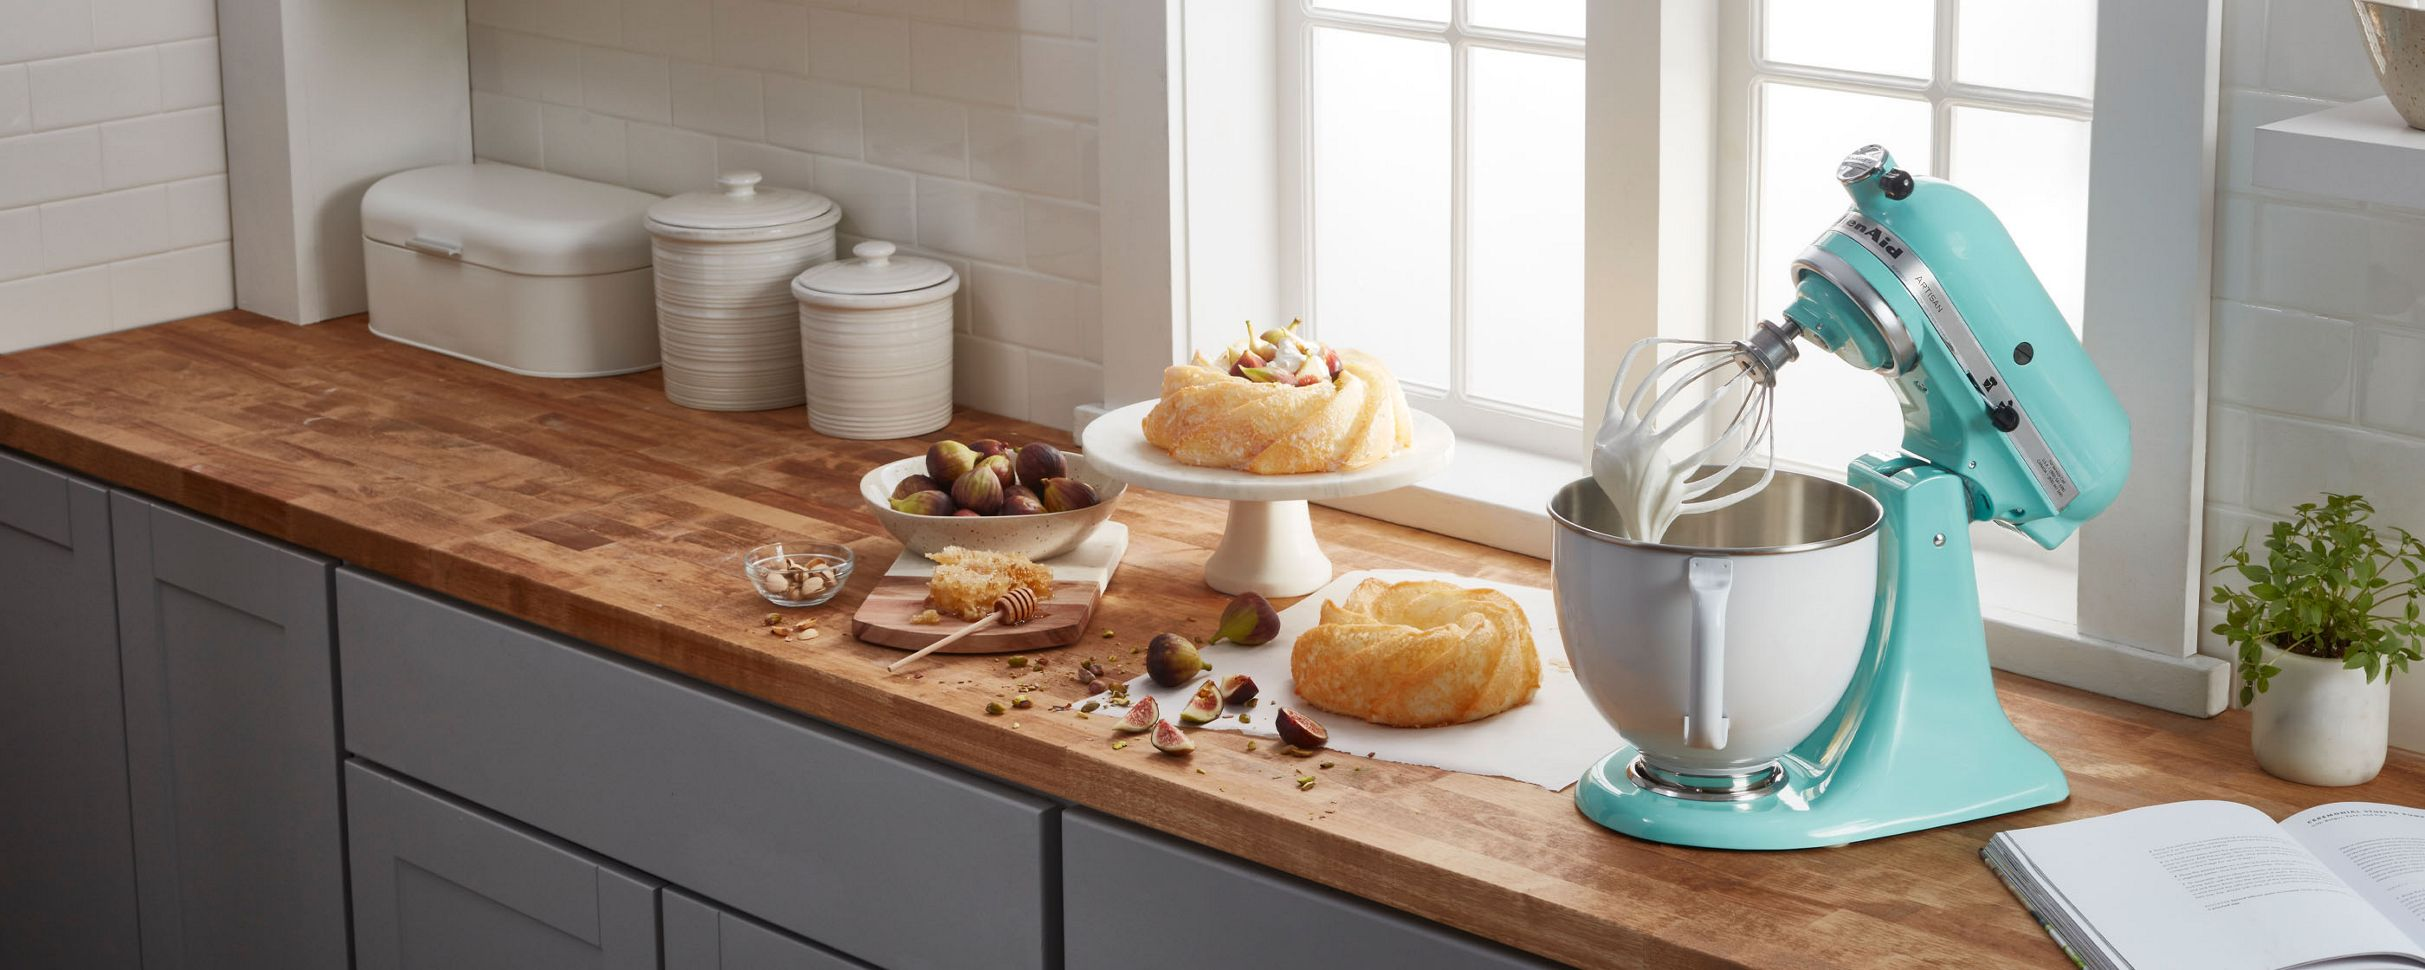 Inspiration Cuisine En U kitchen appliances to bring culinary inspiration to life